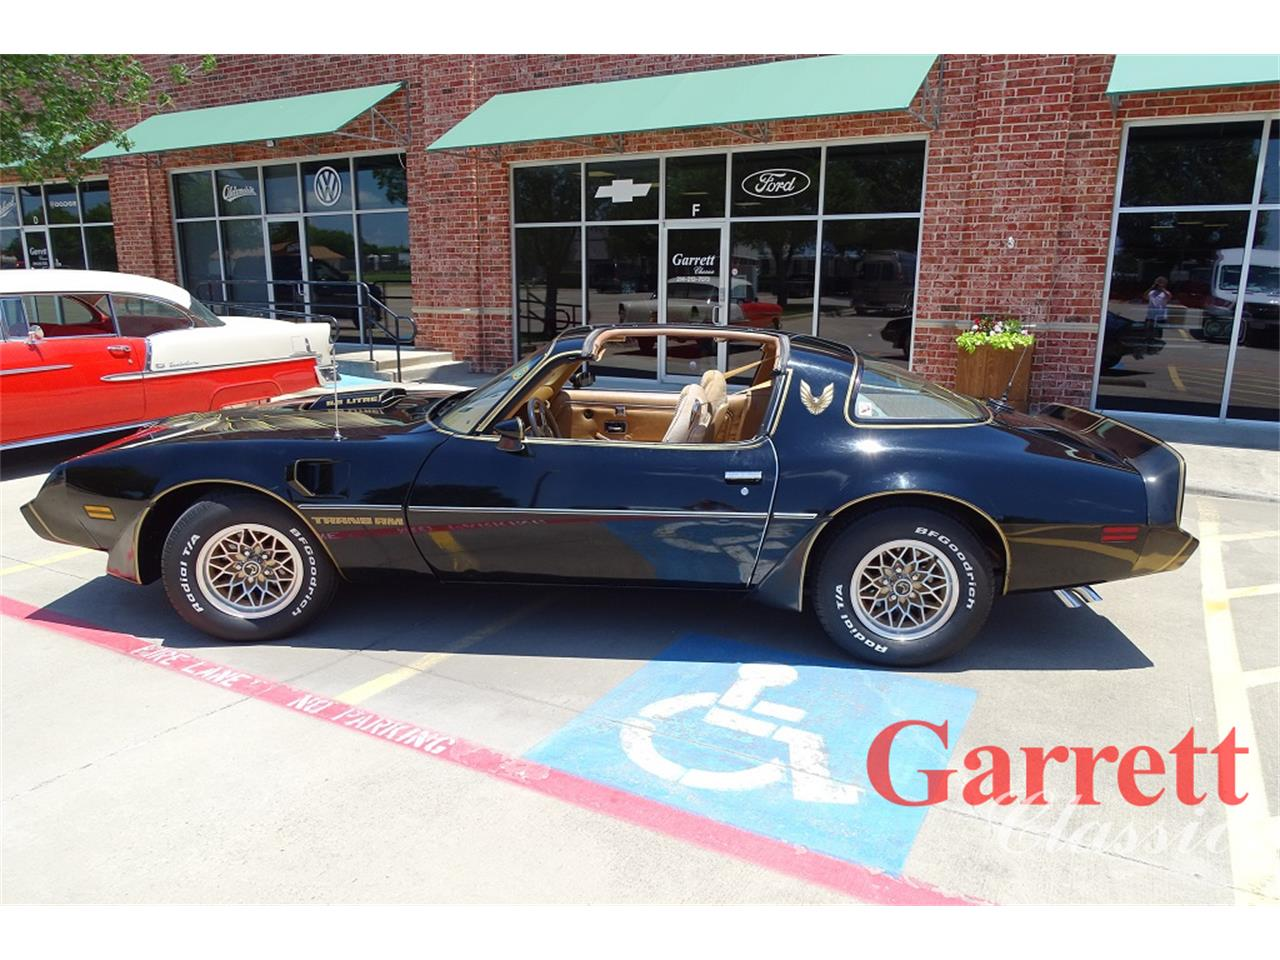 1979 Pontiac Firebird Trans Am (CC-1229996) for sale in Lewisville, TEXAS (TX)